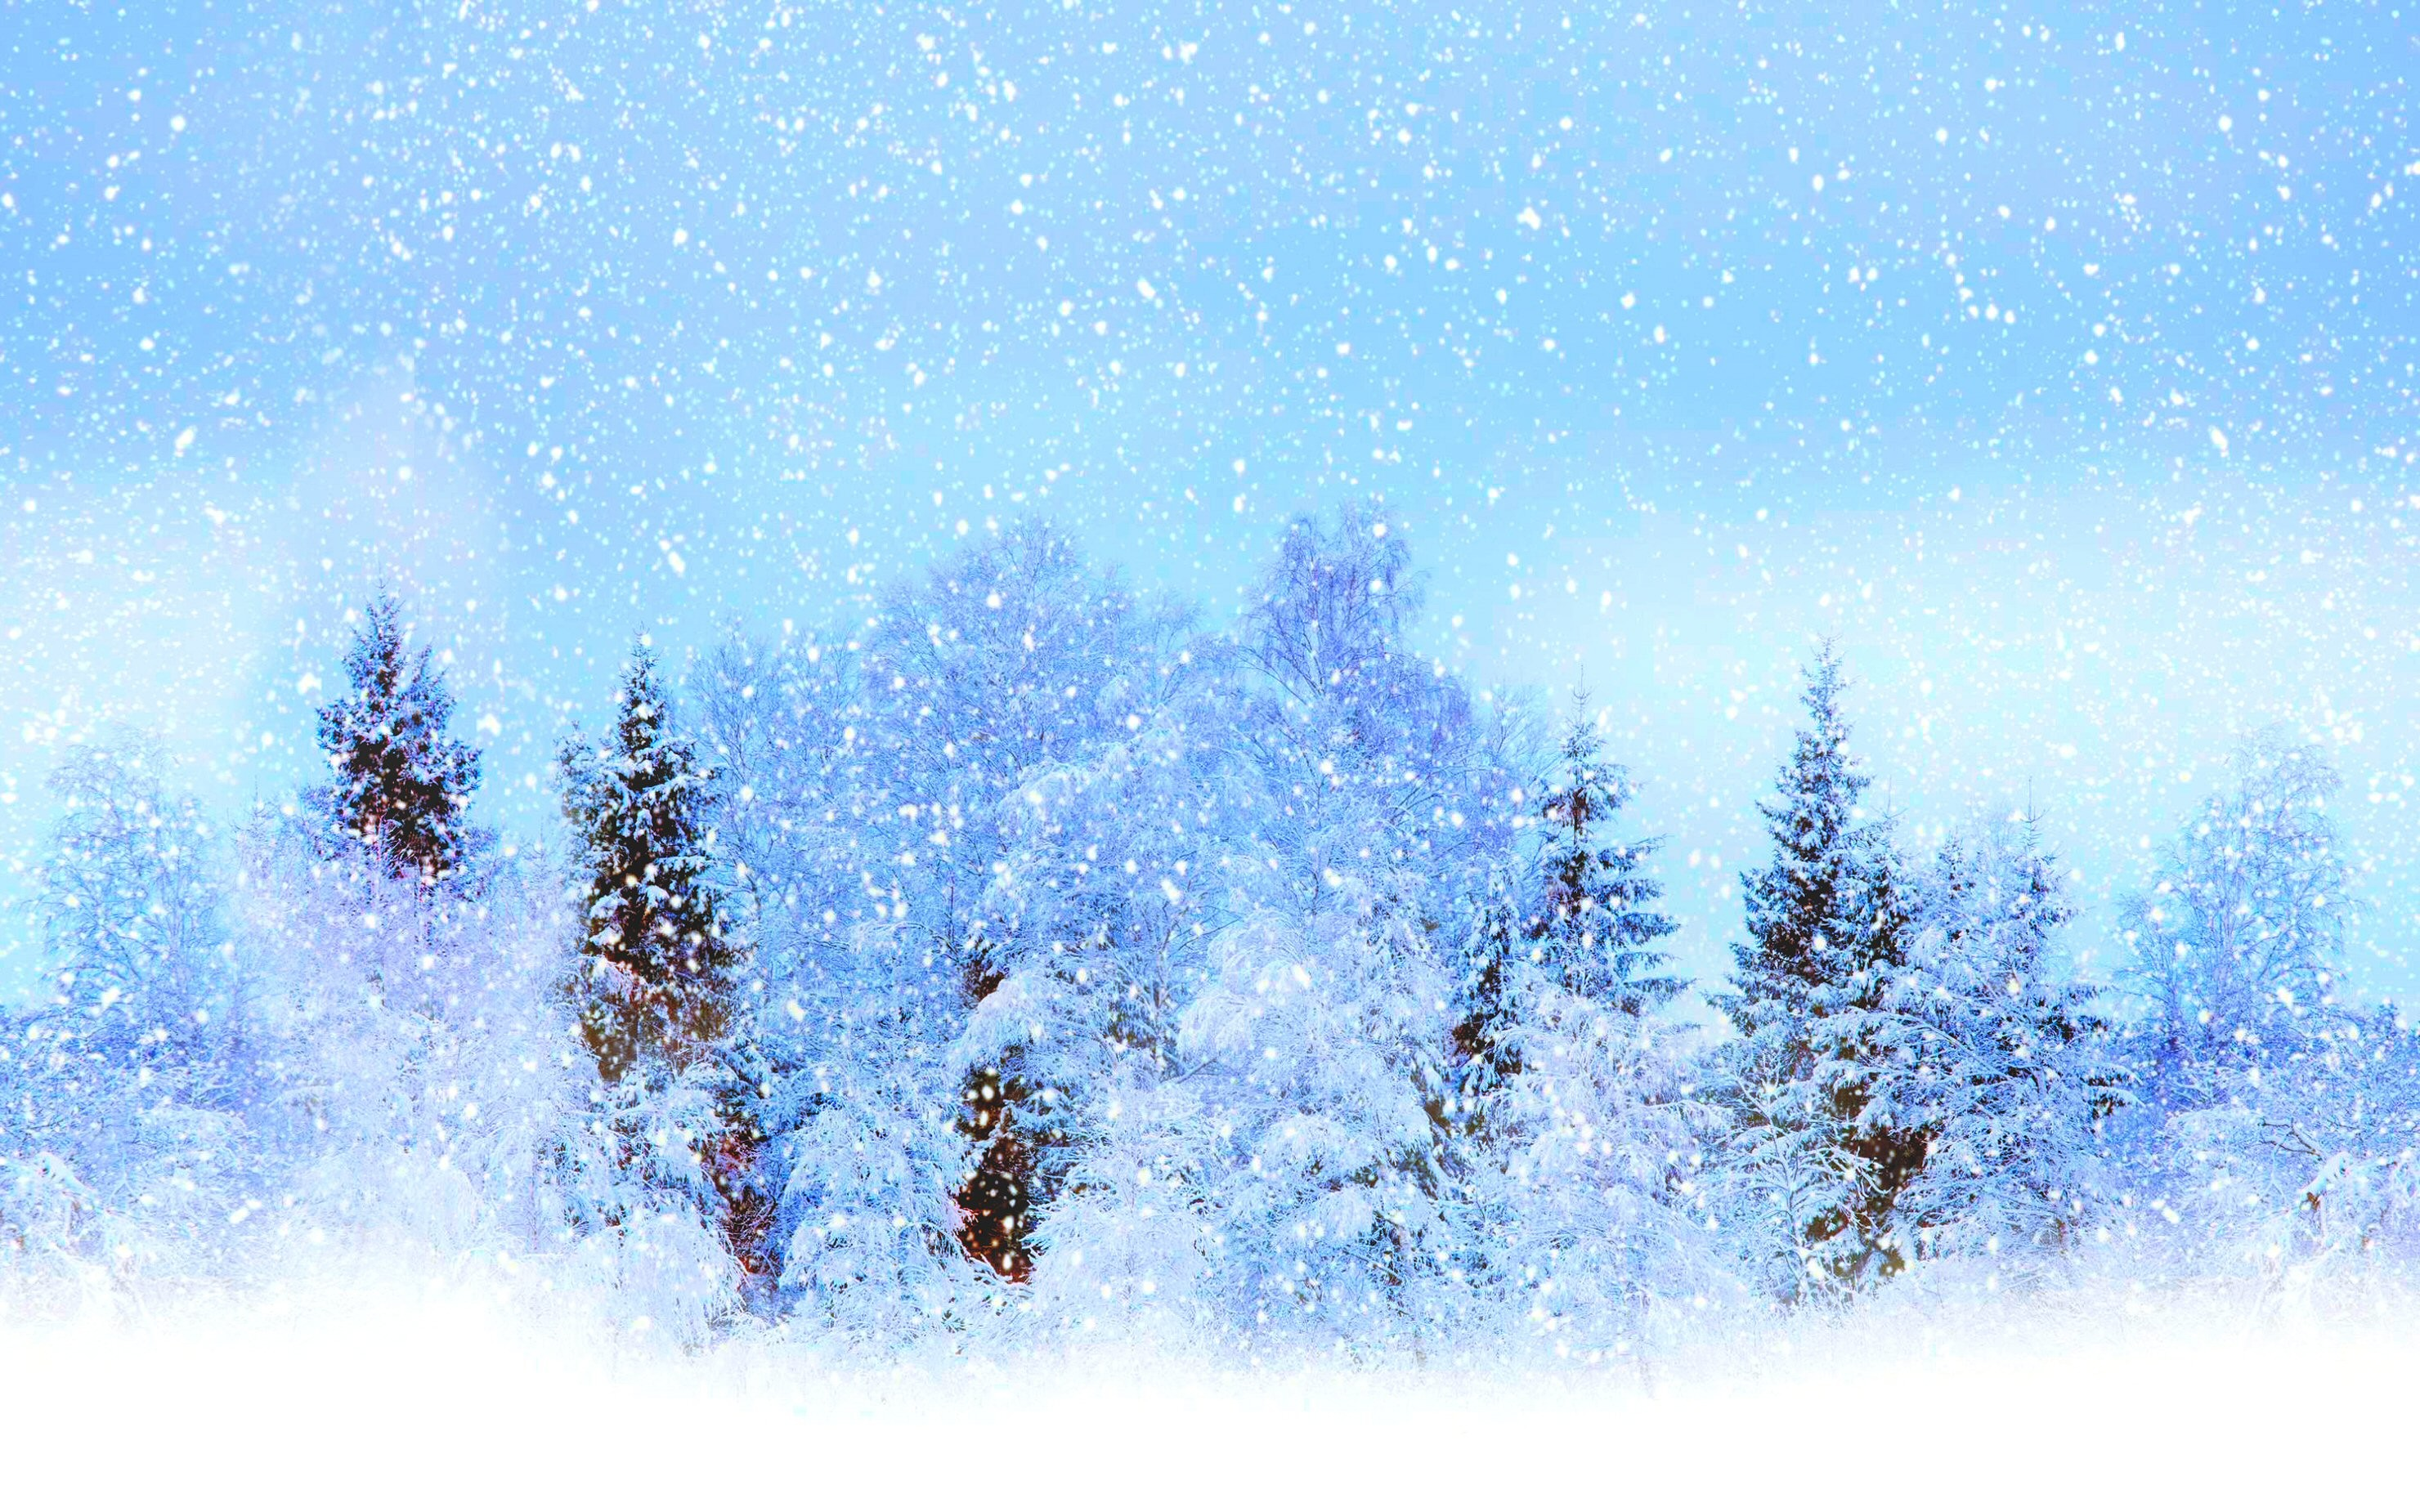 2960x1850 Earth - Winter Nature Tree Blue White Fog Snow Wallpaper